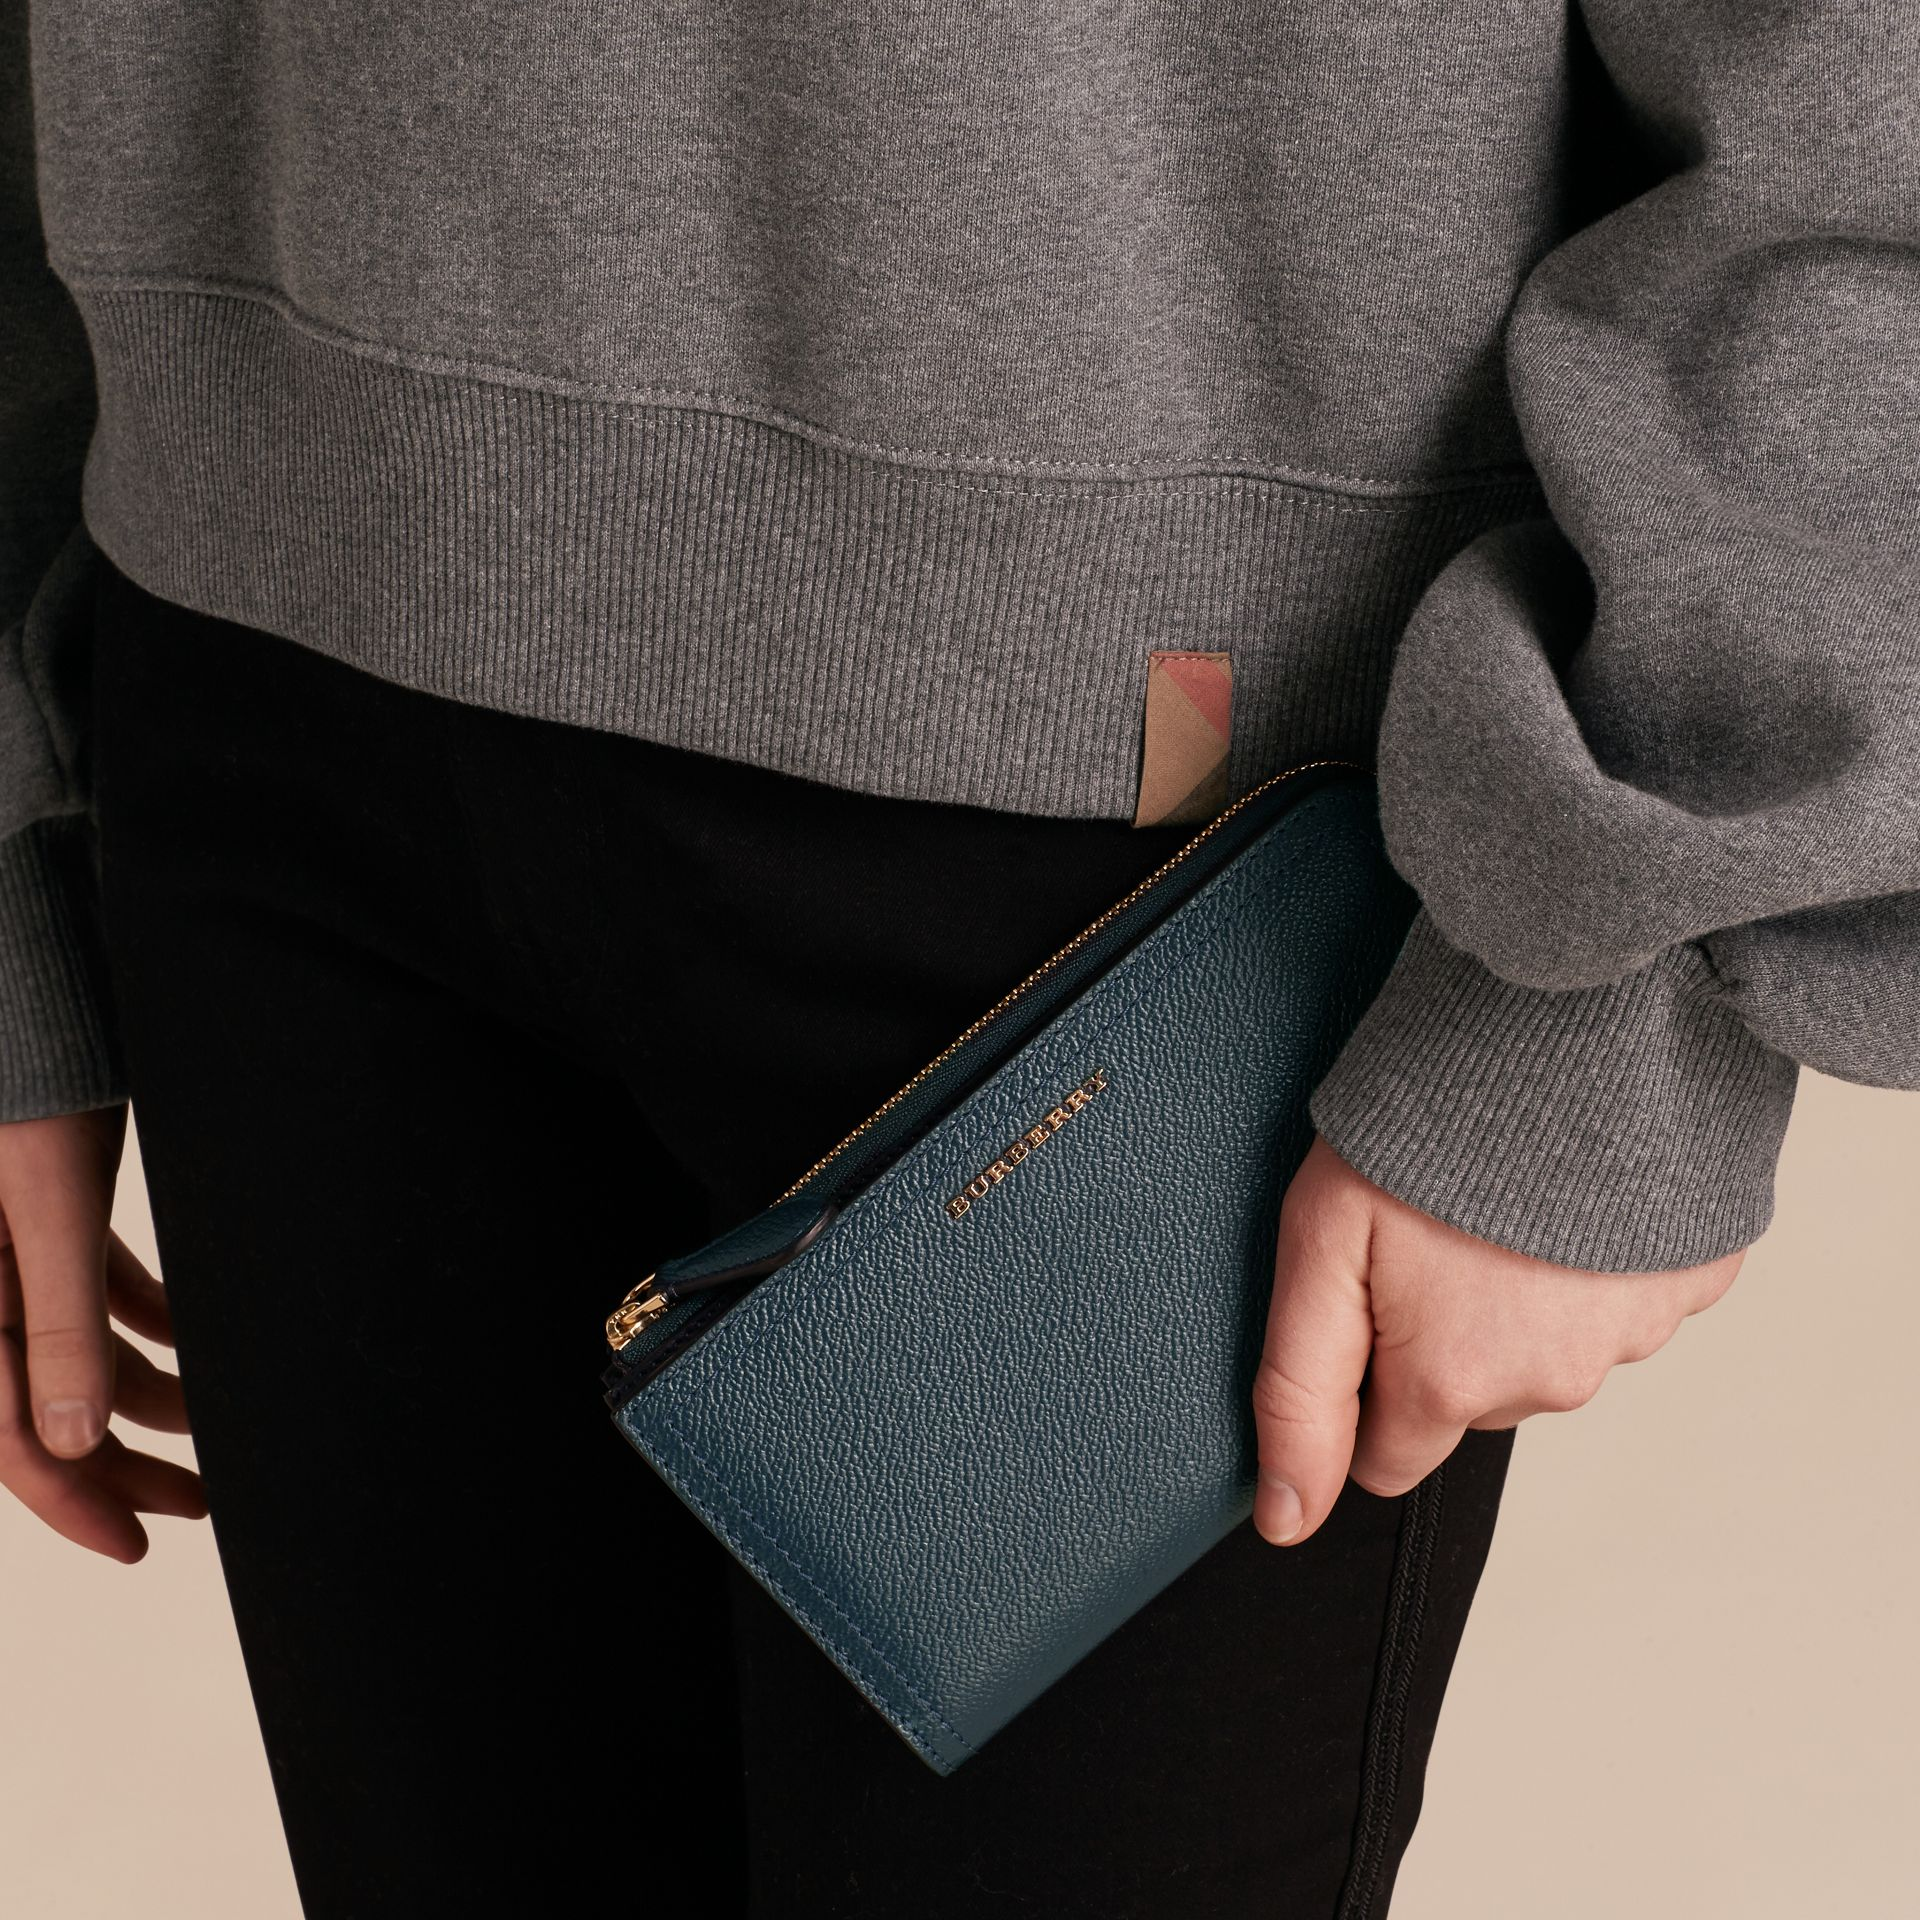 Grainy Leather Ziparound Wallet in Blue Carbon - Women | Burberry Canada - gallery image 3